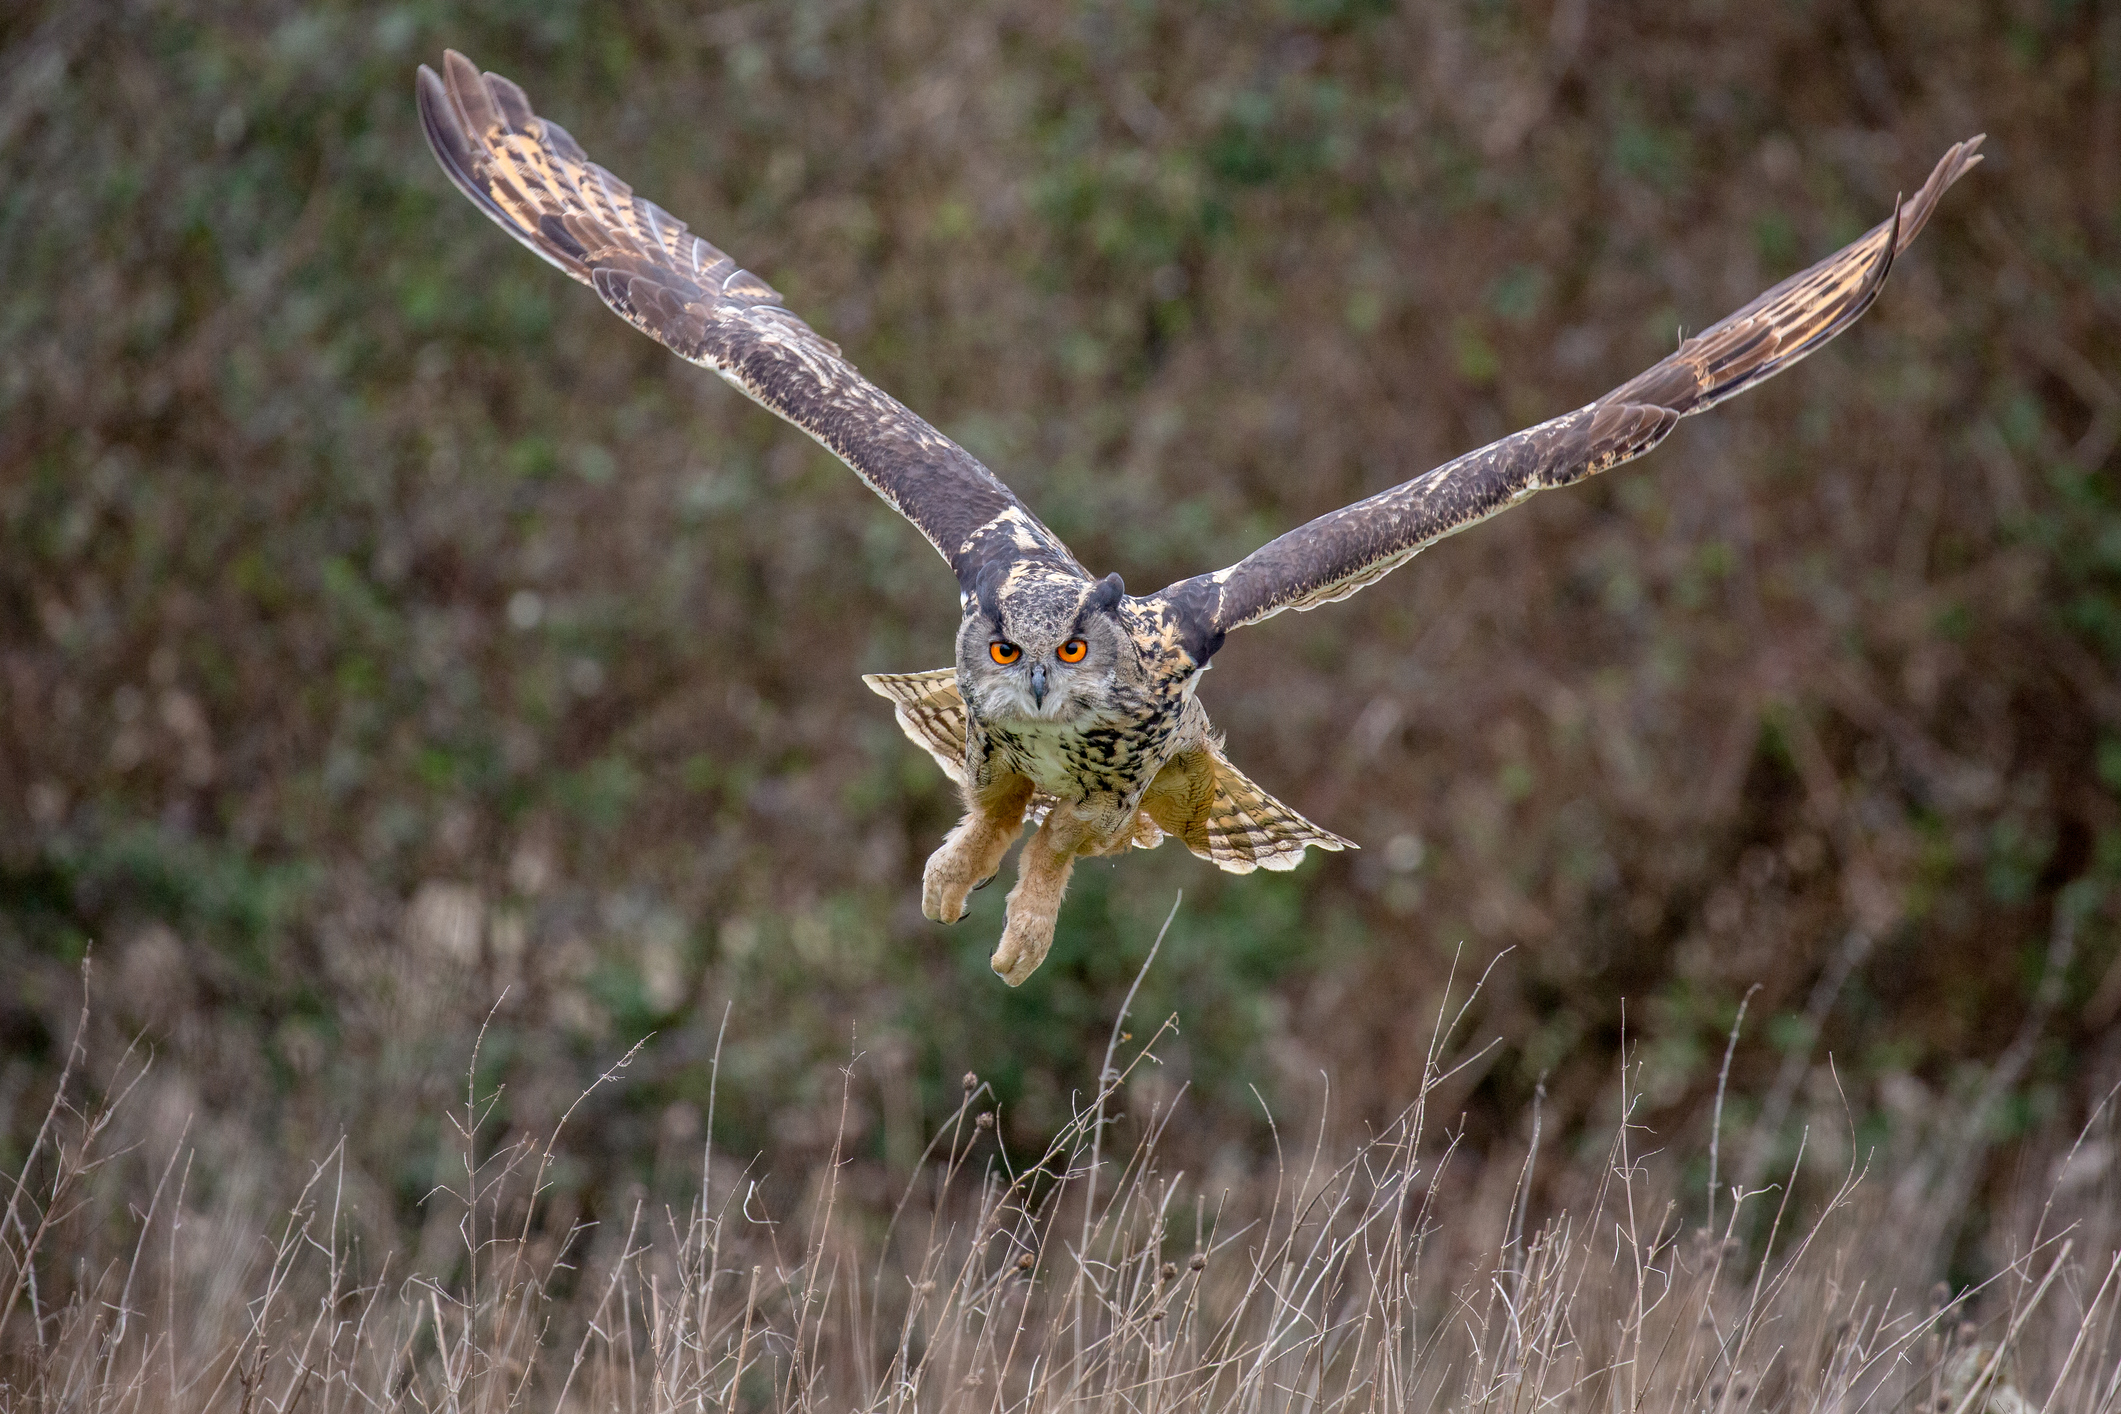 Eurasian Eagle Owl (Bubo bubo) in natural environment, United Kingdom